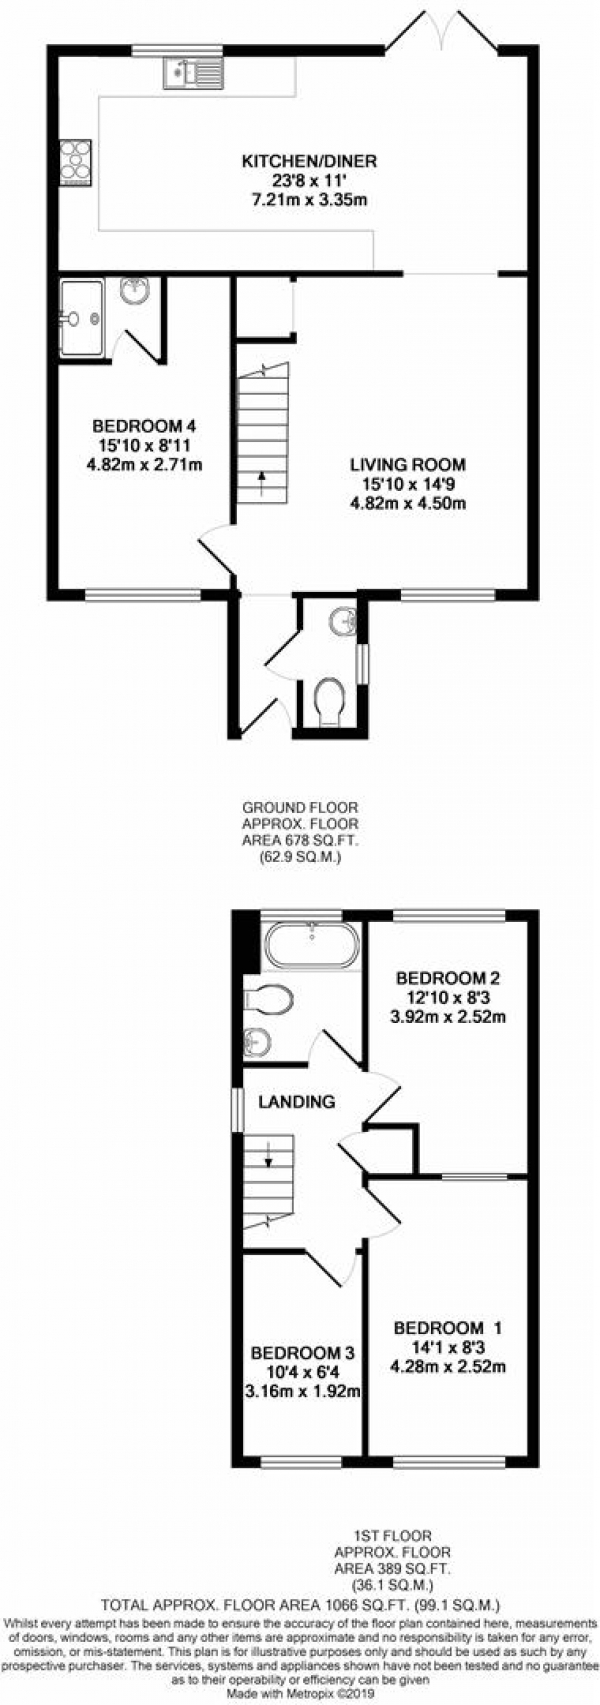 Floor Plan Image for 4 Bedroom Property for Sale in Stainby Close, West Drayton